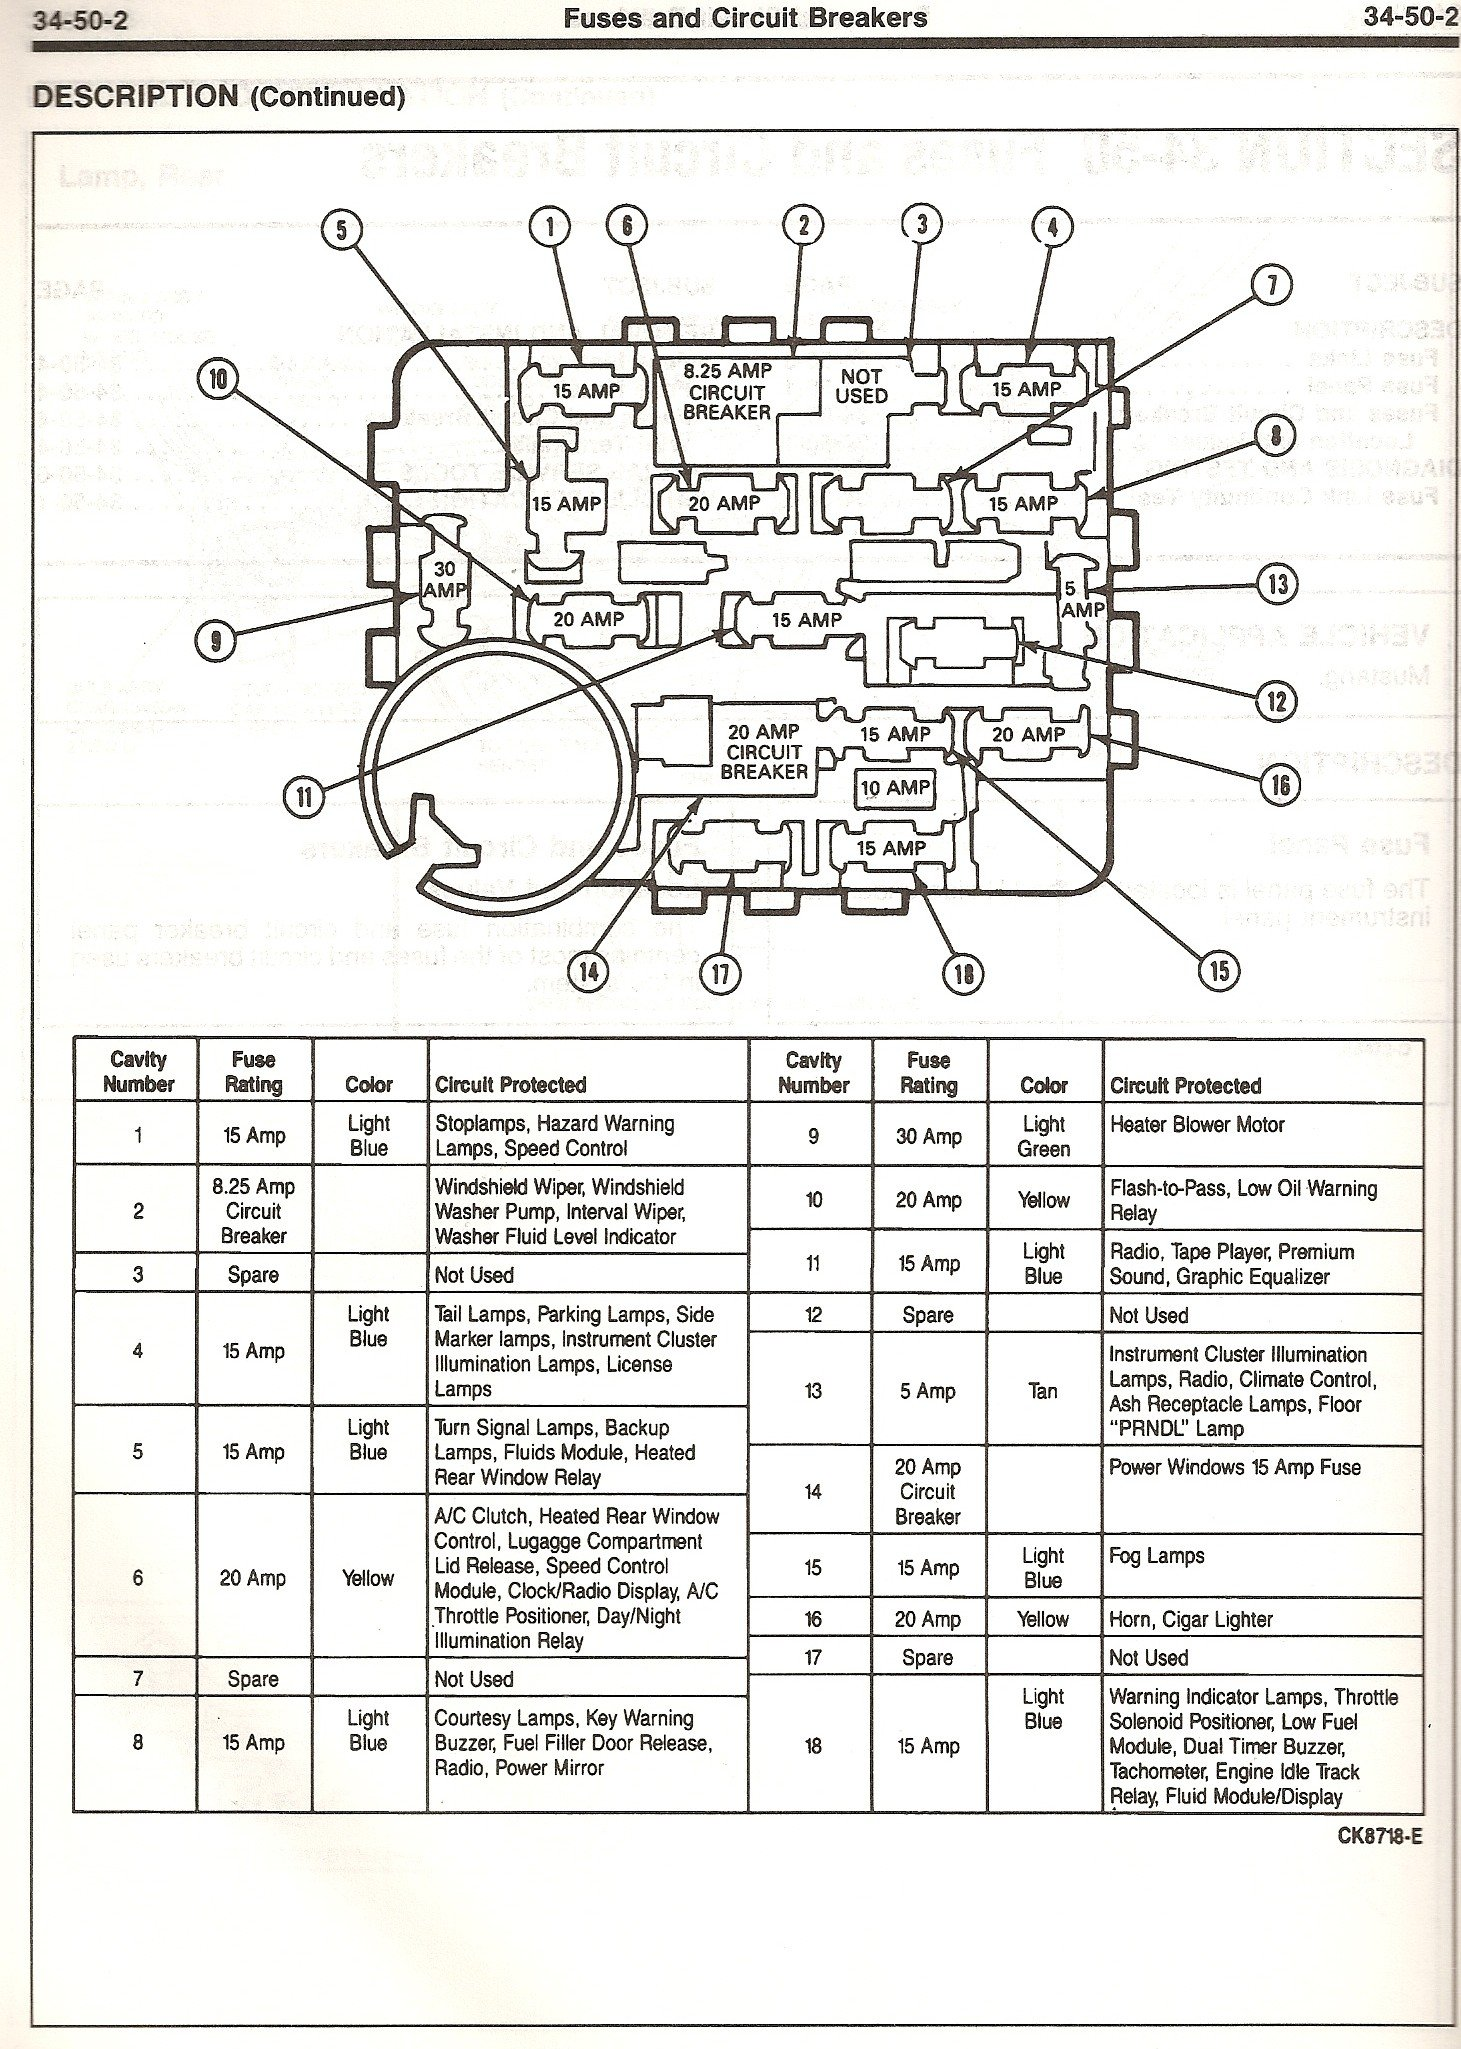 1991 ford tempo fuse diagram 1991 auto wiring diagram schematic 1995 ford f150 fuse panel diagram images on 1991 ford tempo fuse diagram